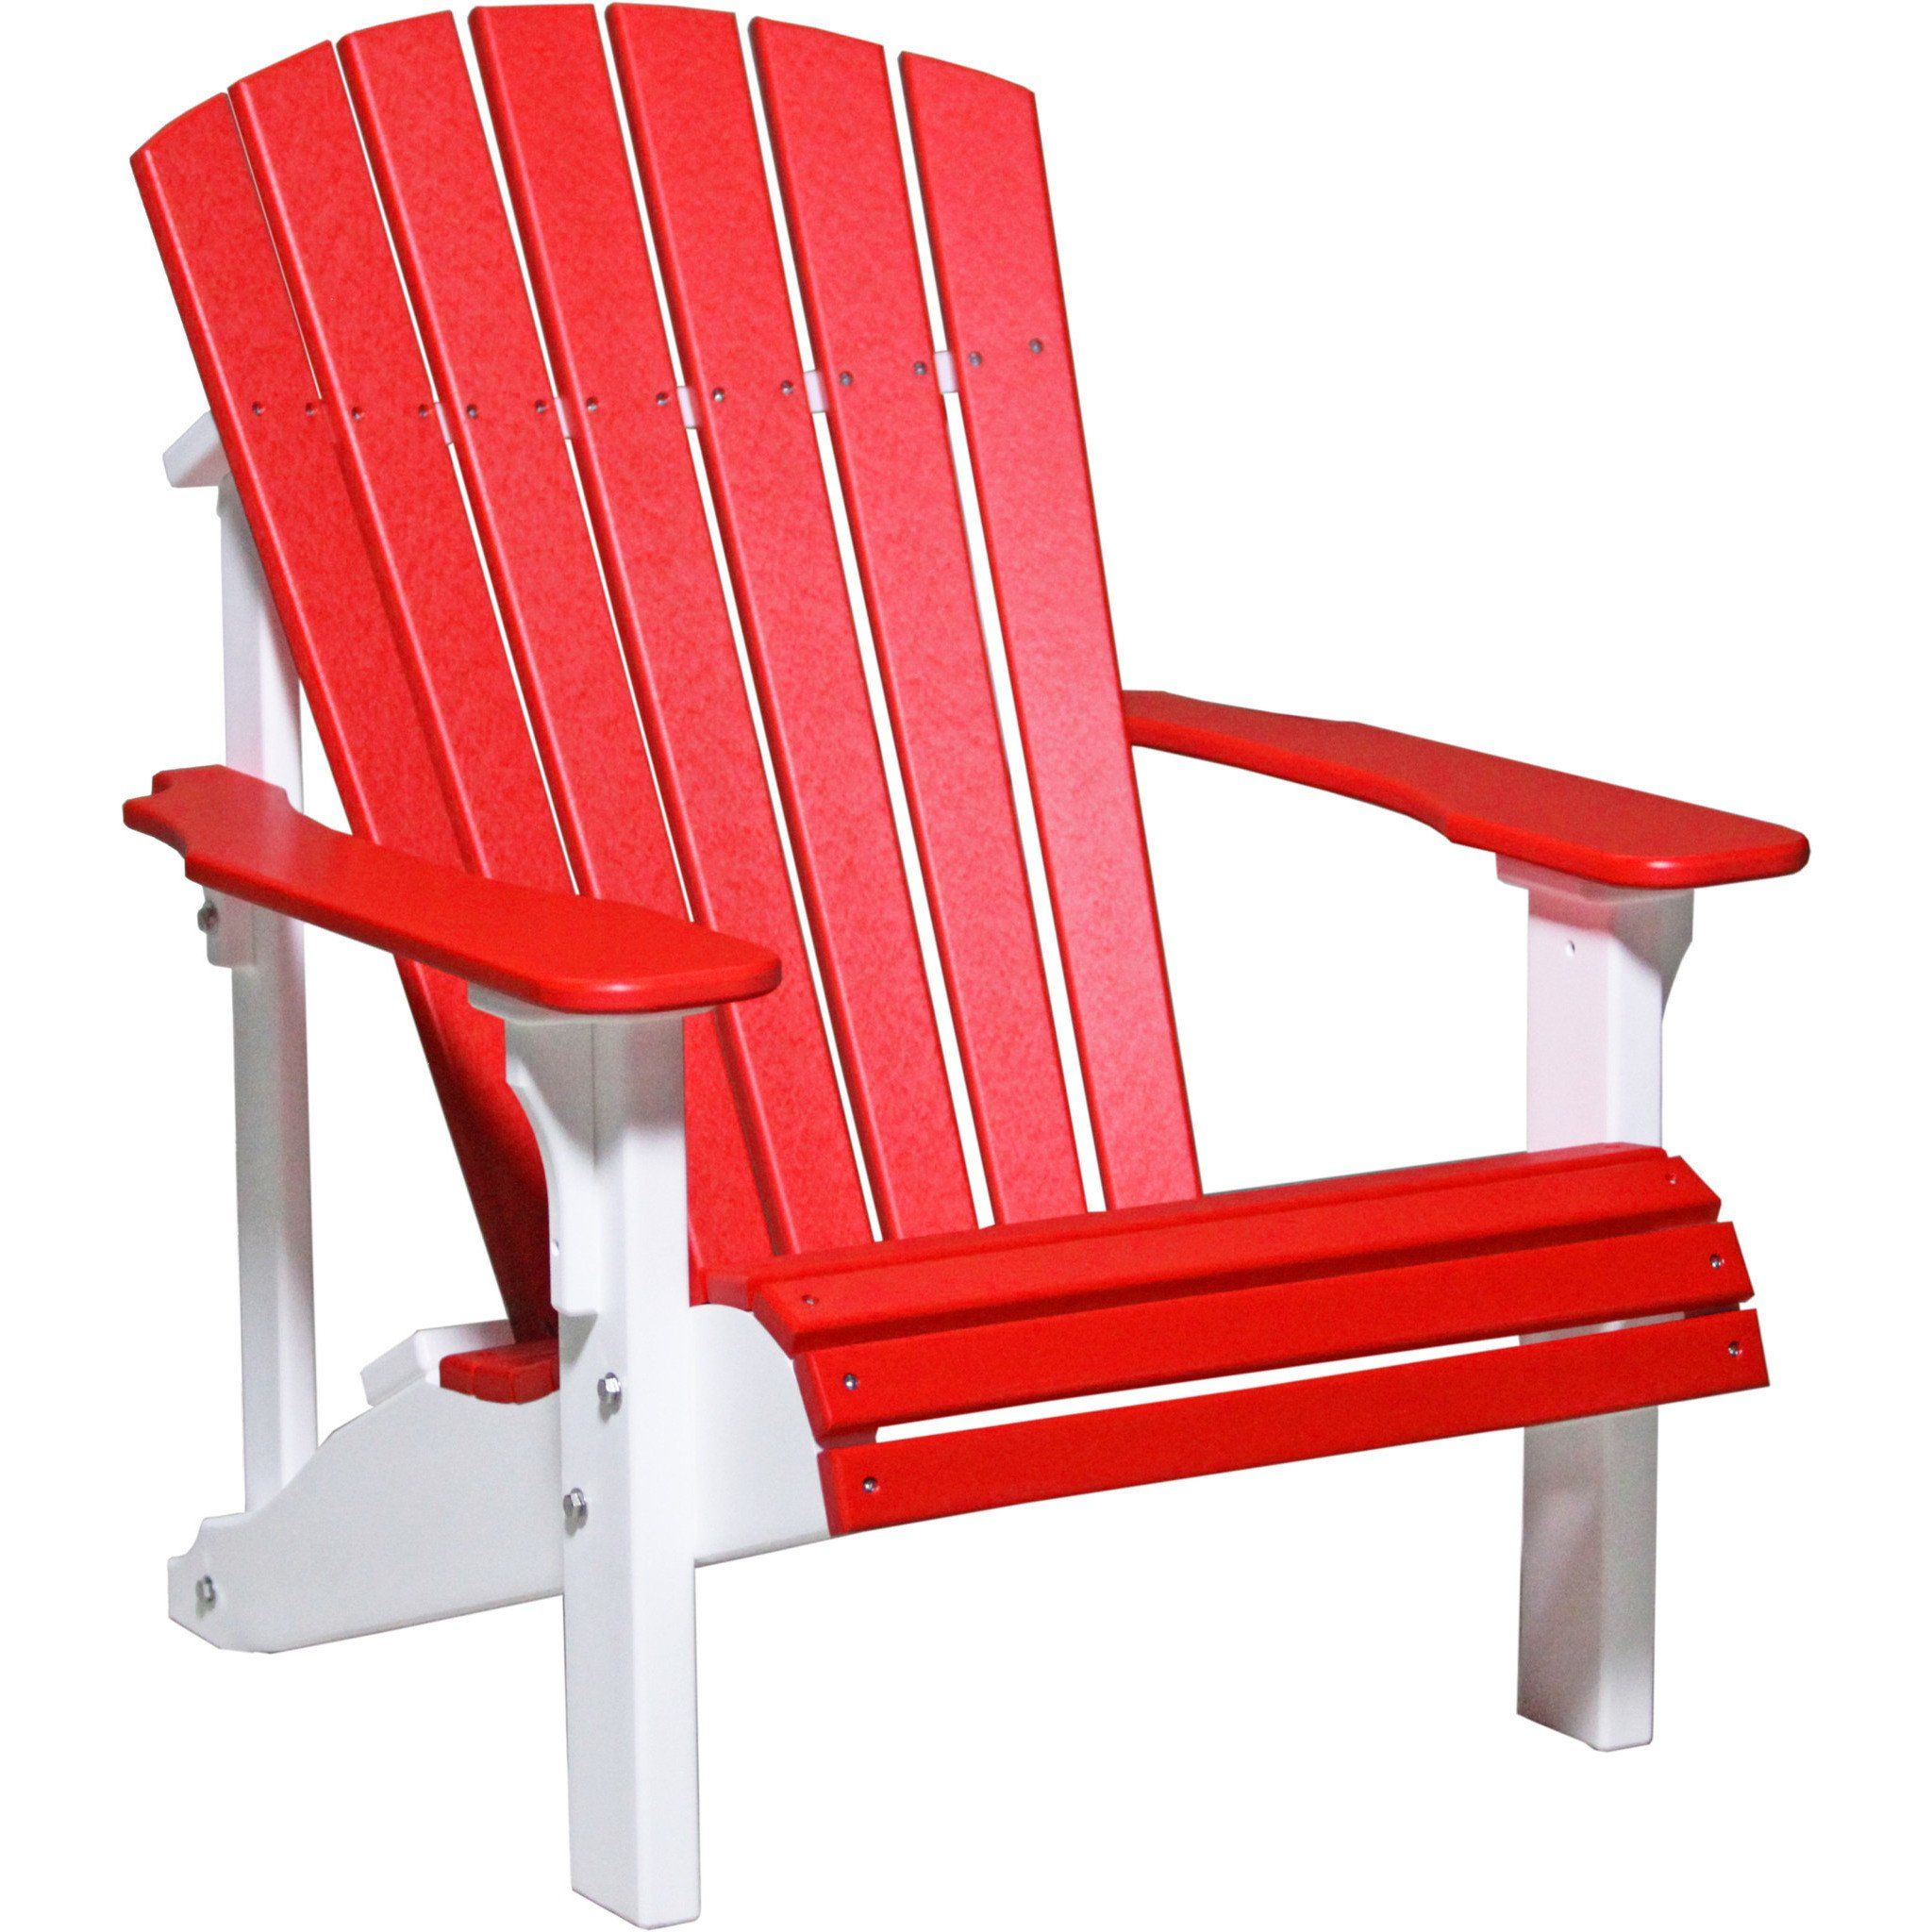 Luxcraft Recycled Plastic Deluxe Adirondack Chair Wood Patio